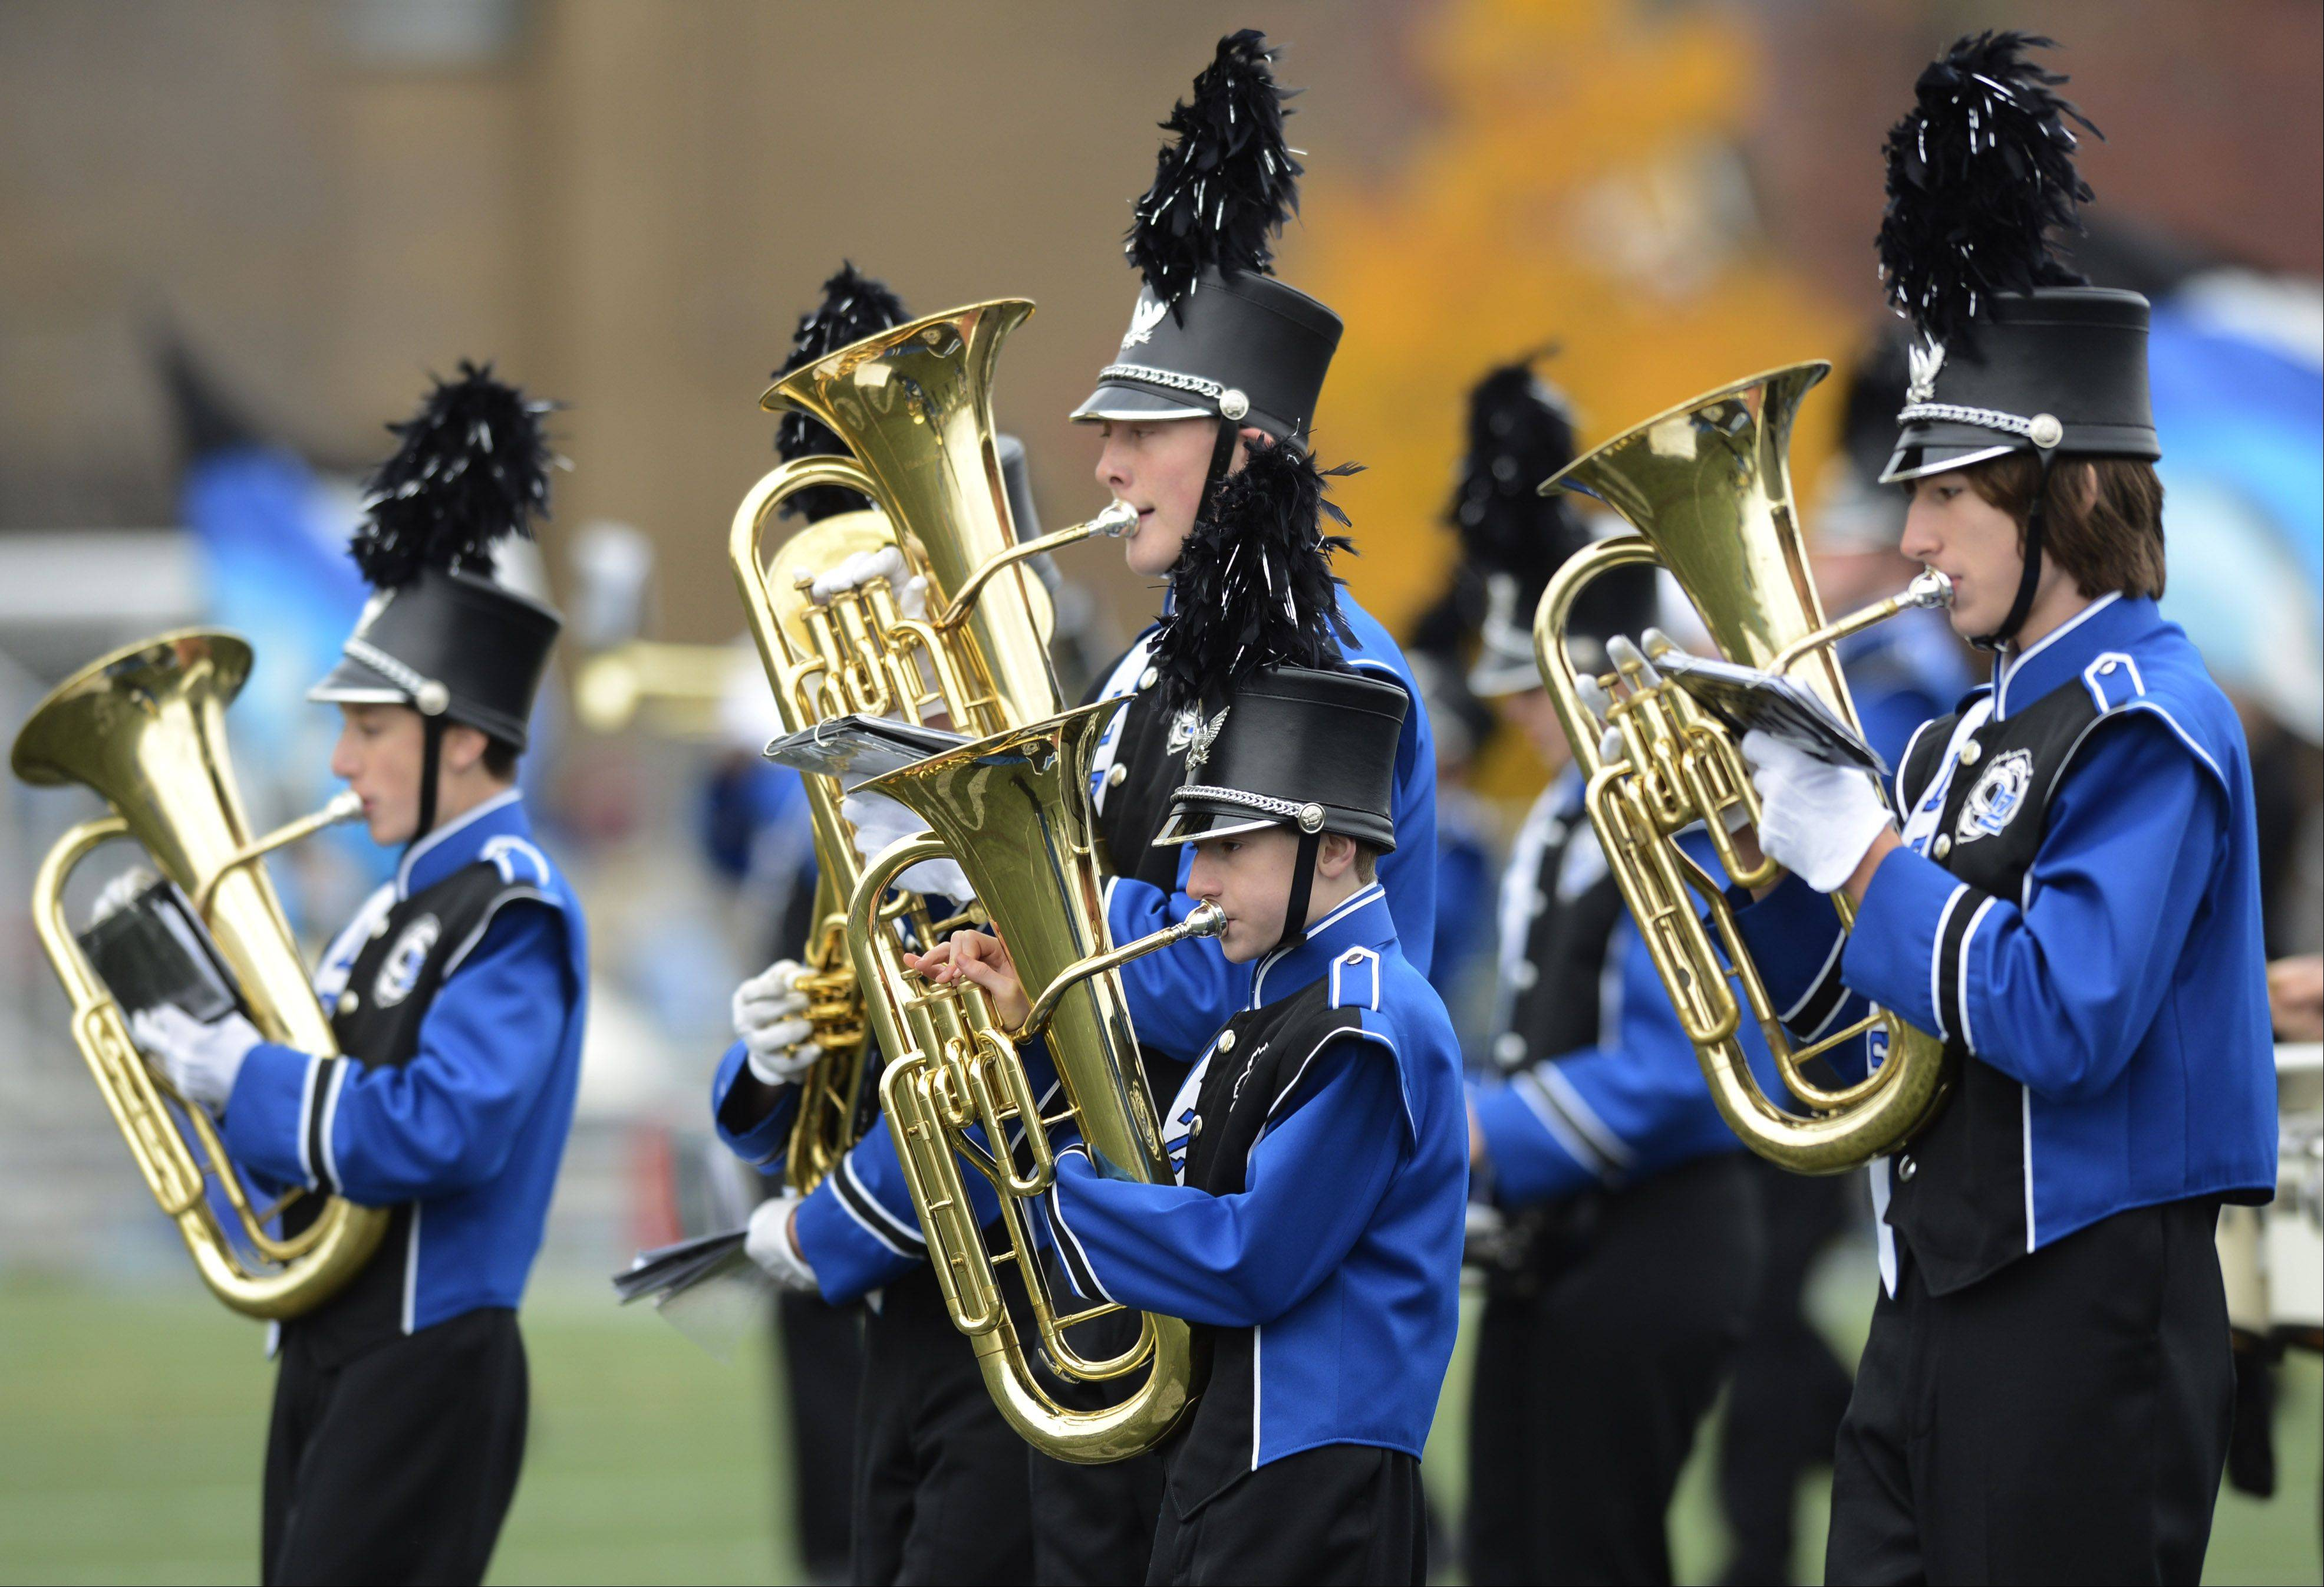 Lake Zurich band students still trying to get home